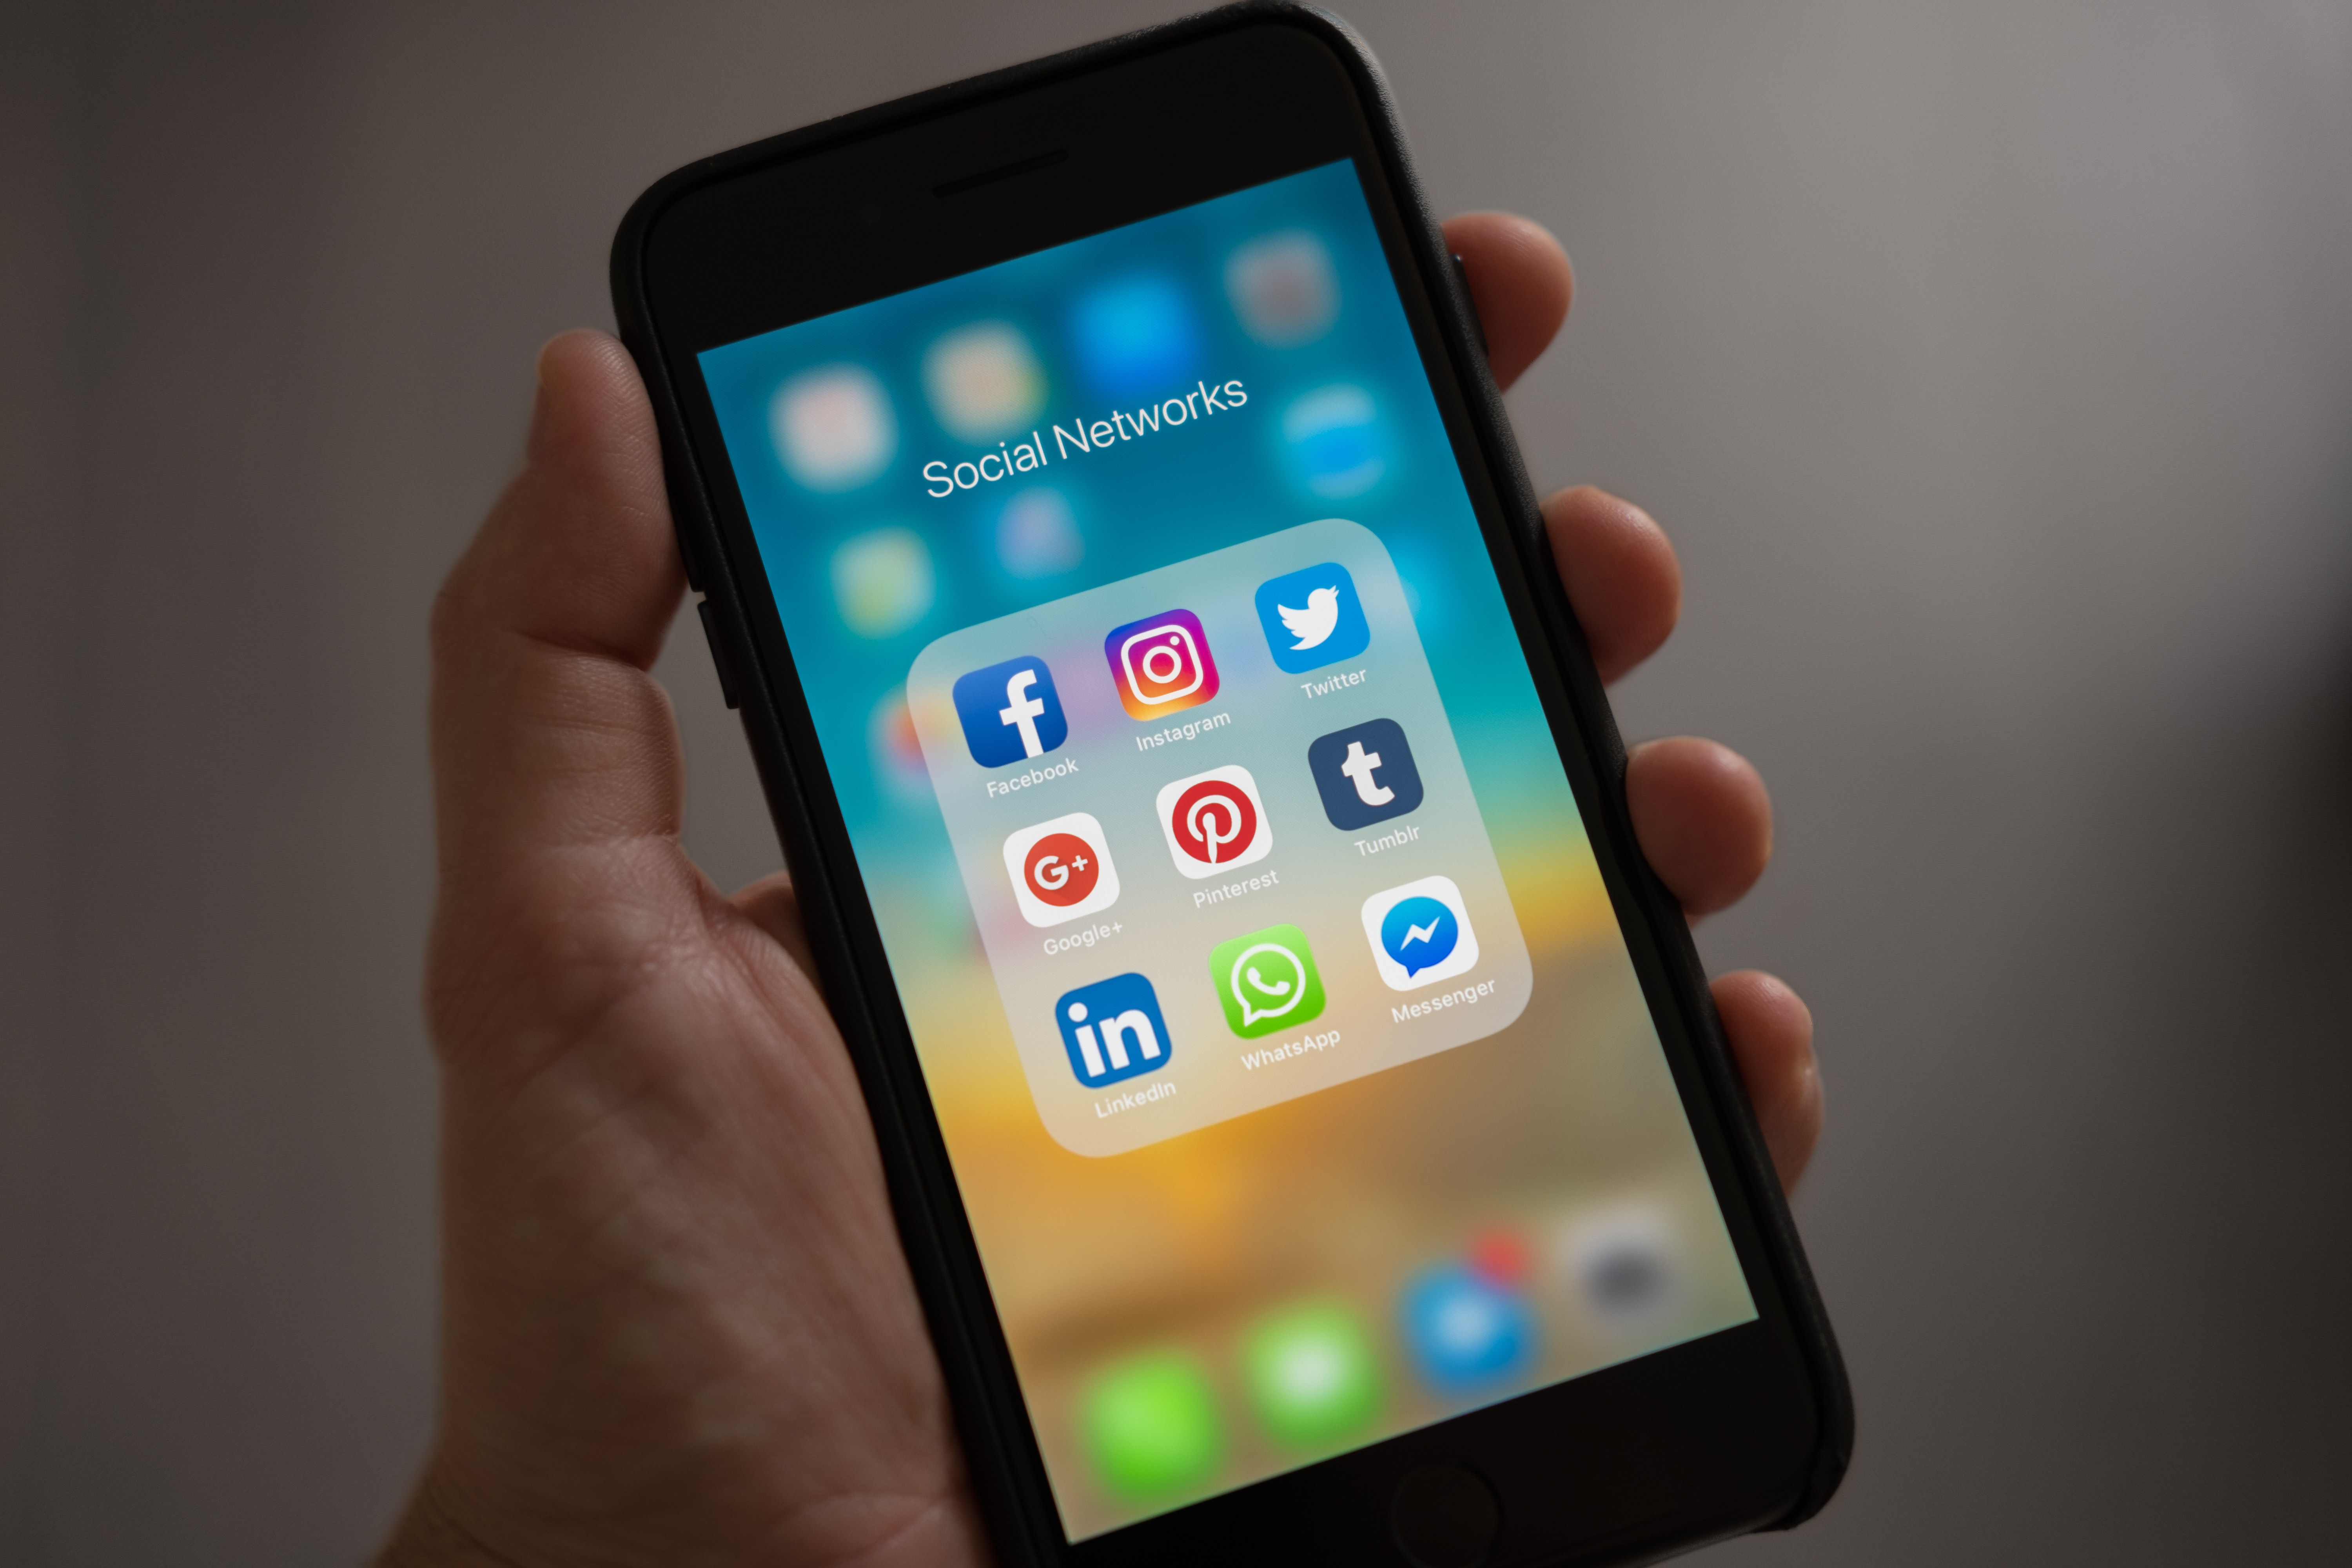 A photo of a phone screen showing various social media icons.